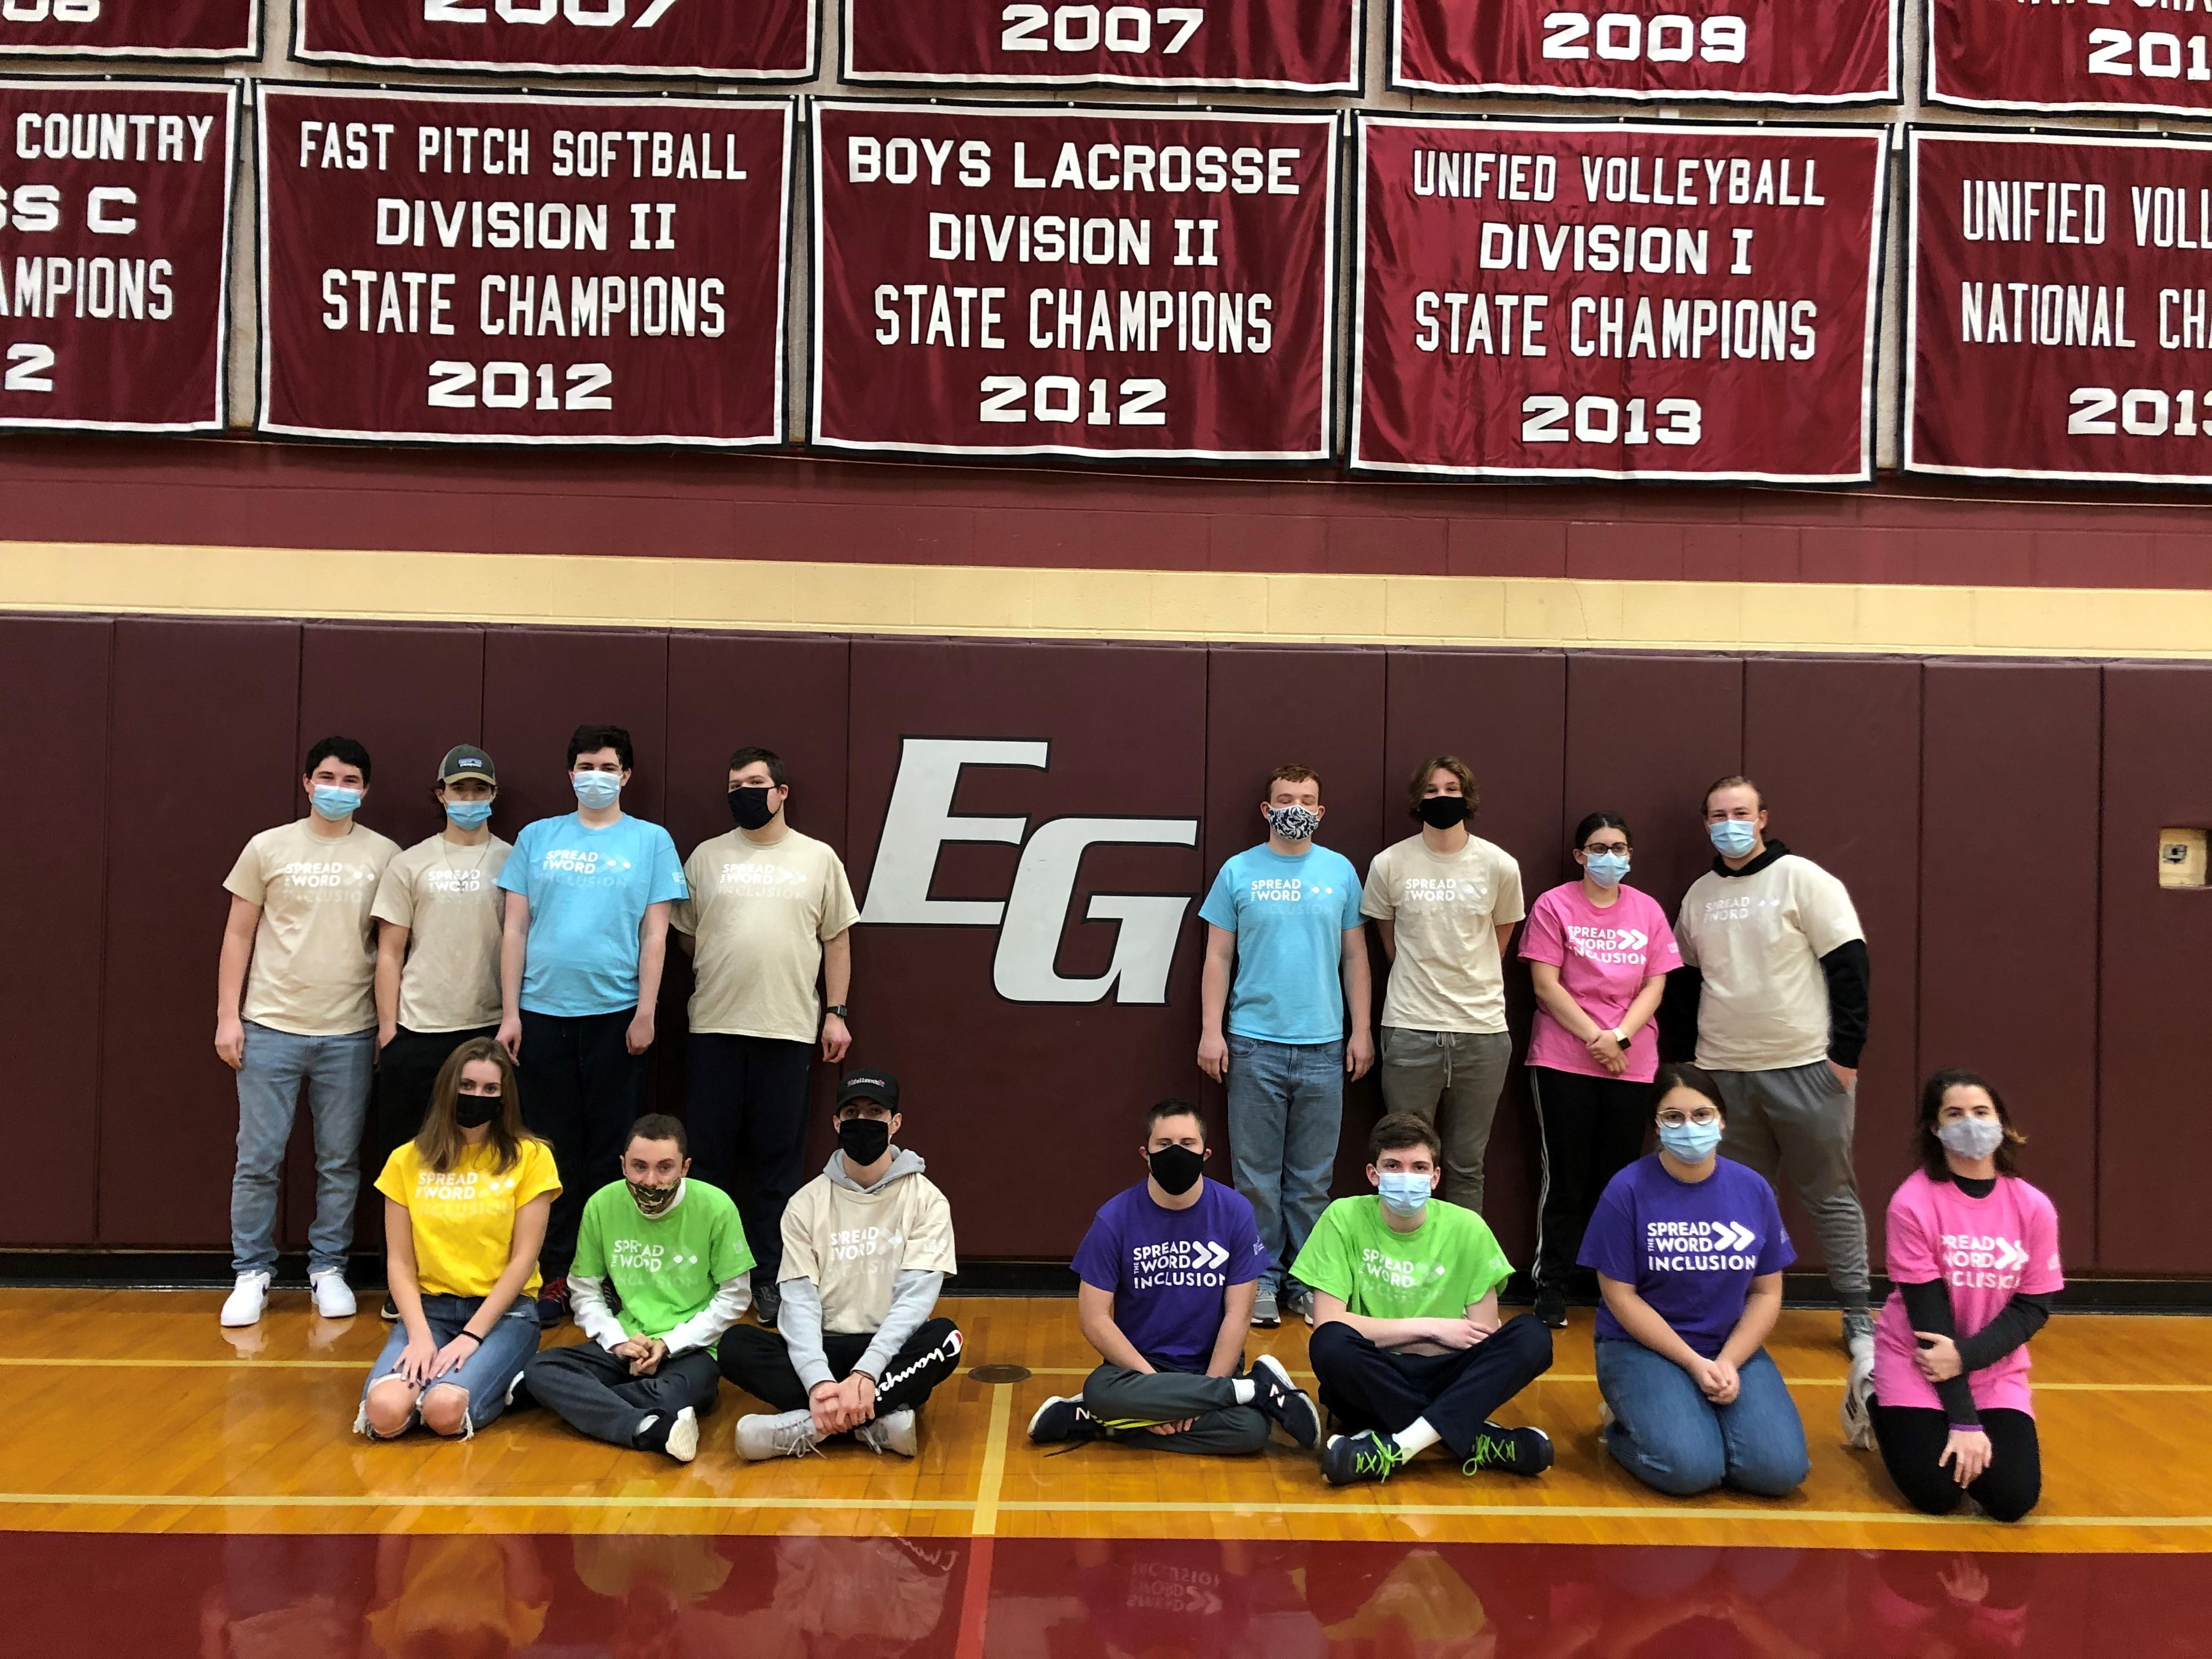 East Greenwich High School Unified Volleyball Team